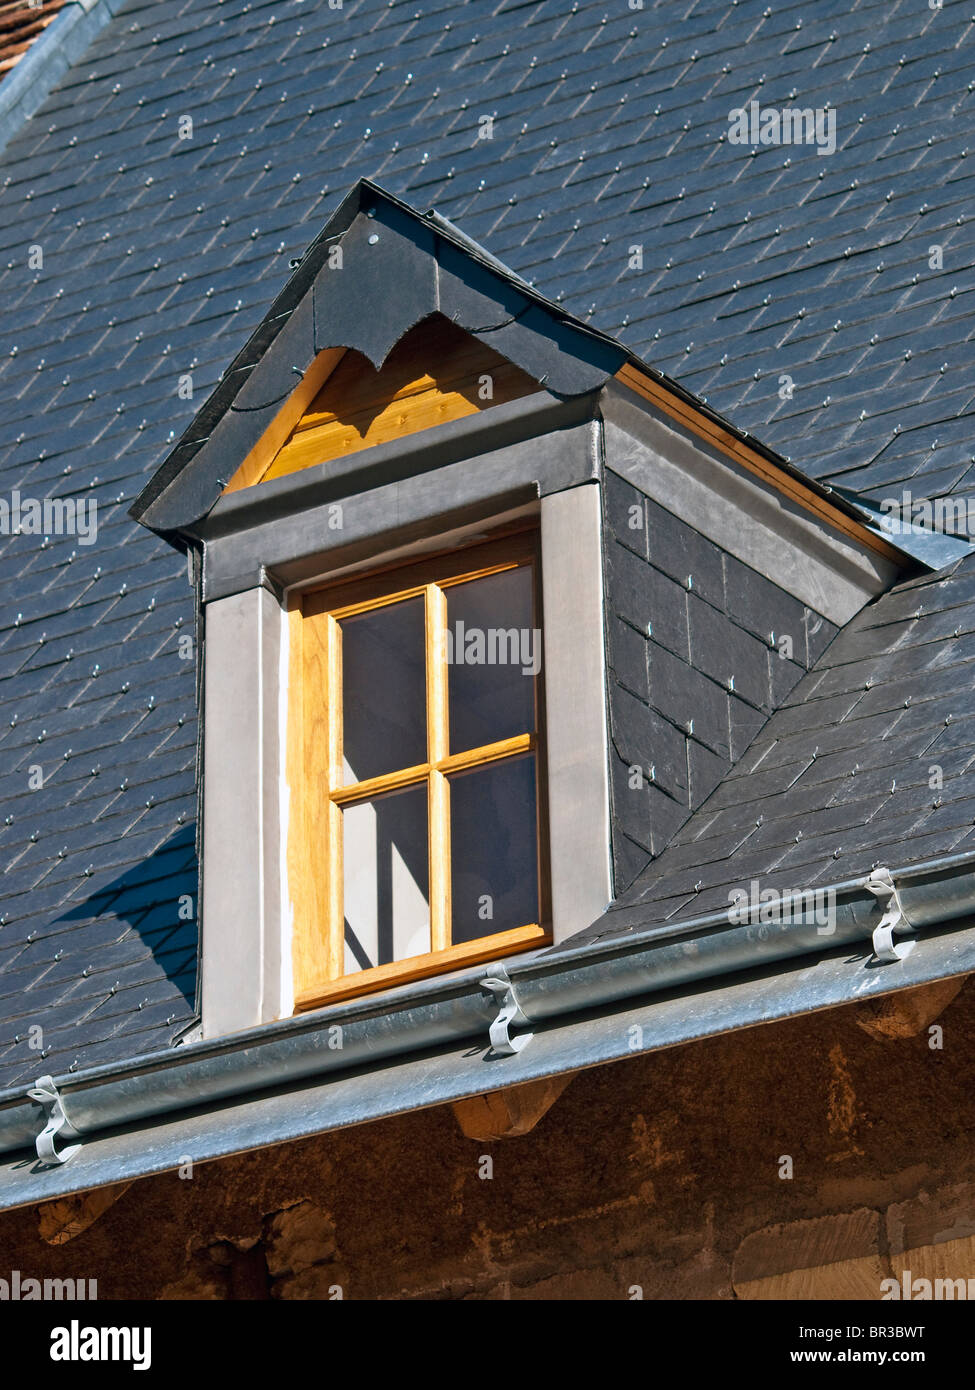 Newly renovated attic dormer roof - France. - Stock Image